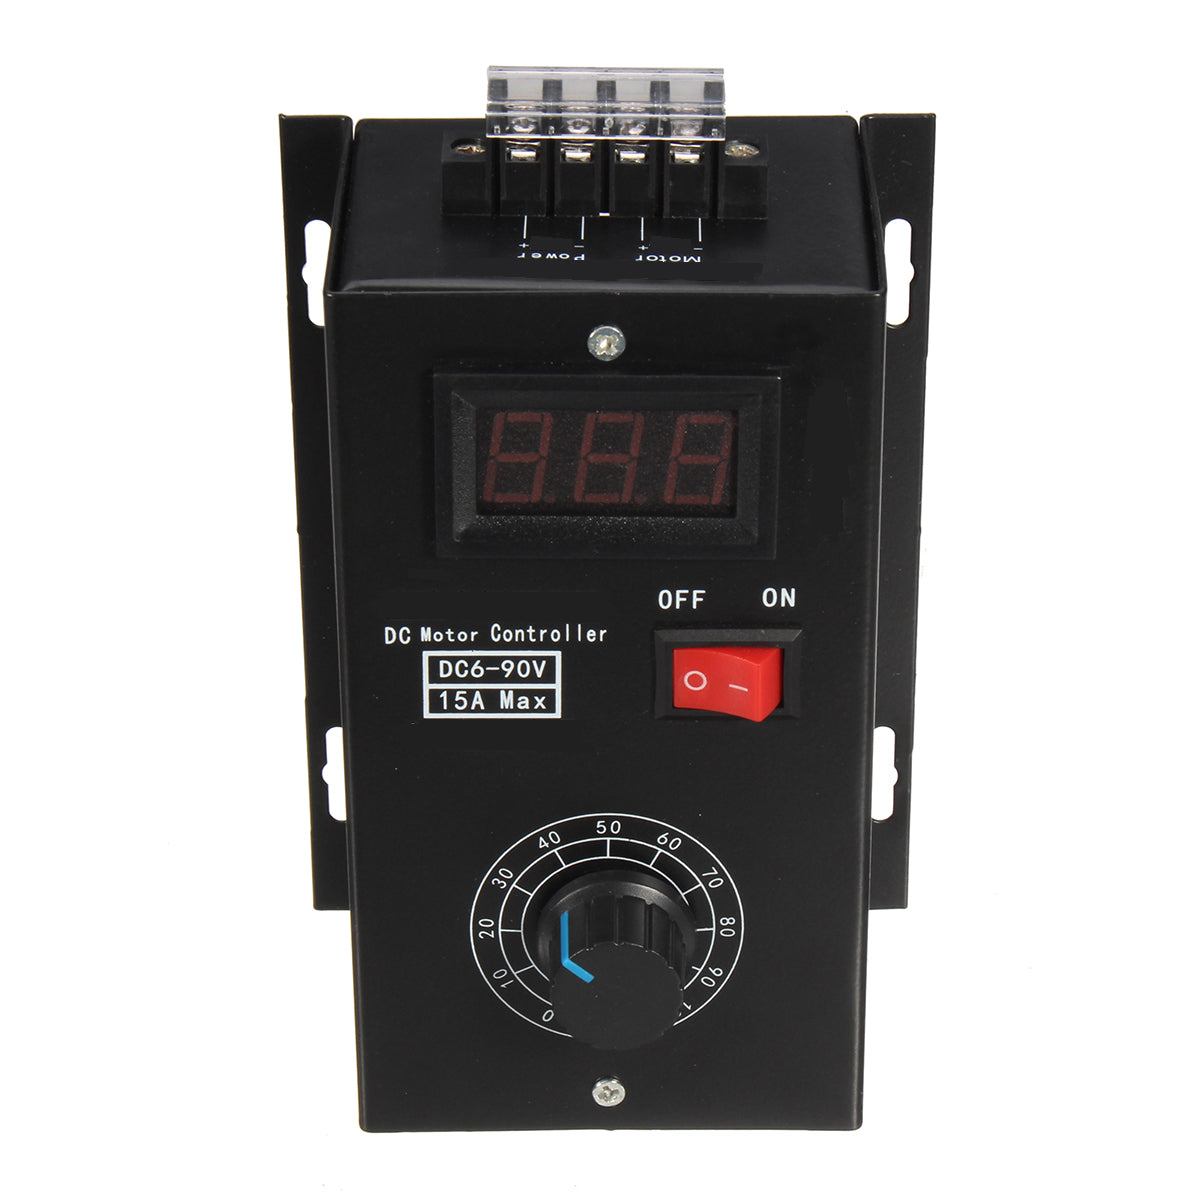 DC 6-90V PWM DC Motor Speed Controller Regulator PLC 15A Governor with Volt Display